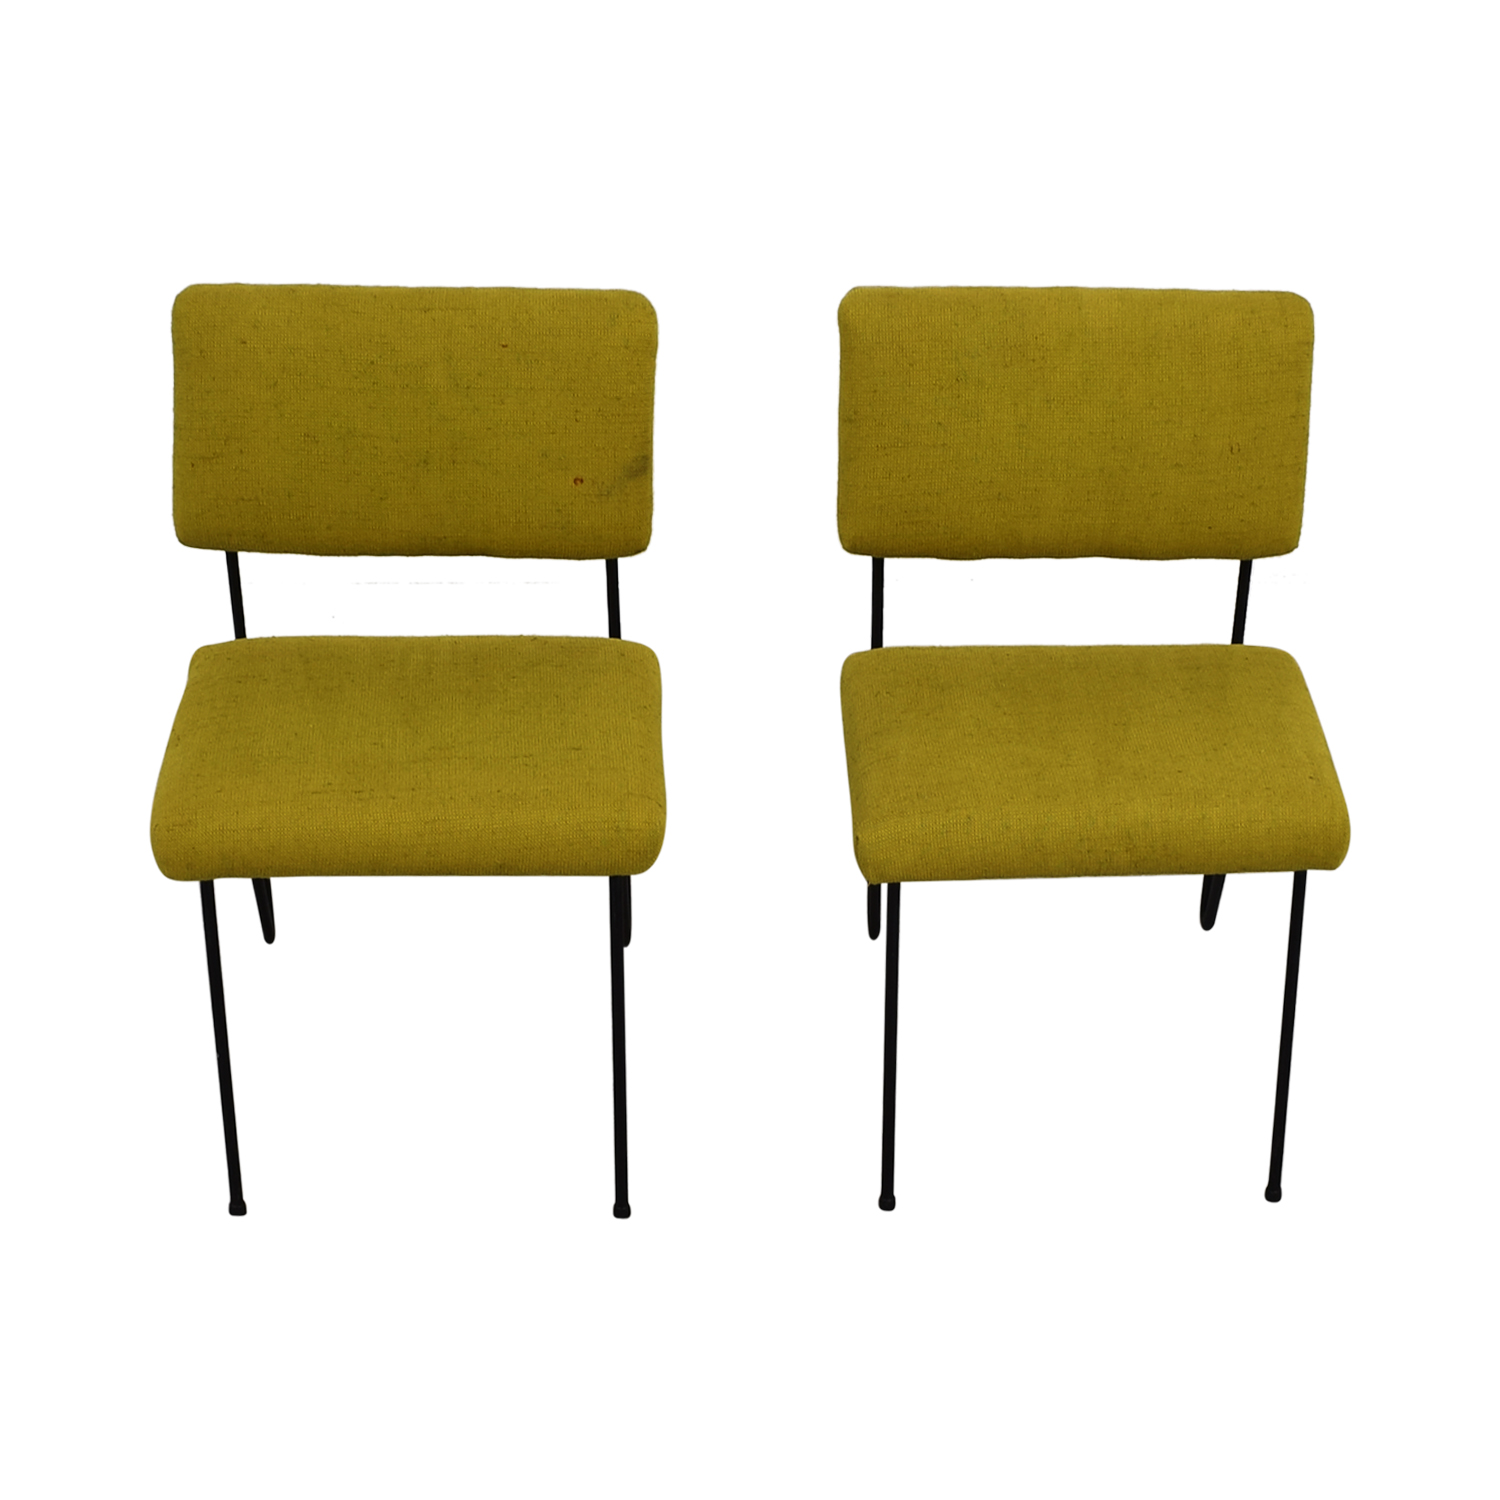 Cool 63 Off Furniture Masters Furniture Masters Green Fabric And Metal Chairs Chairs Ibusinesslaw Wood Chair Design Ideas Ibusinesslaworg